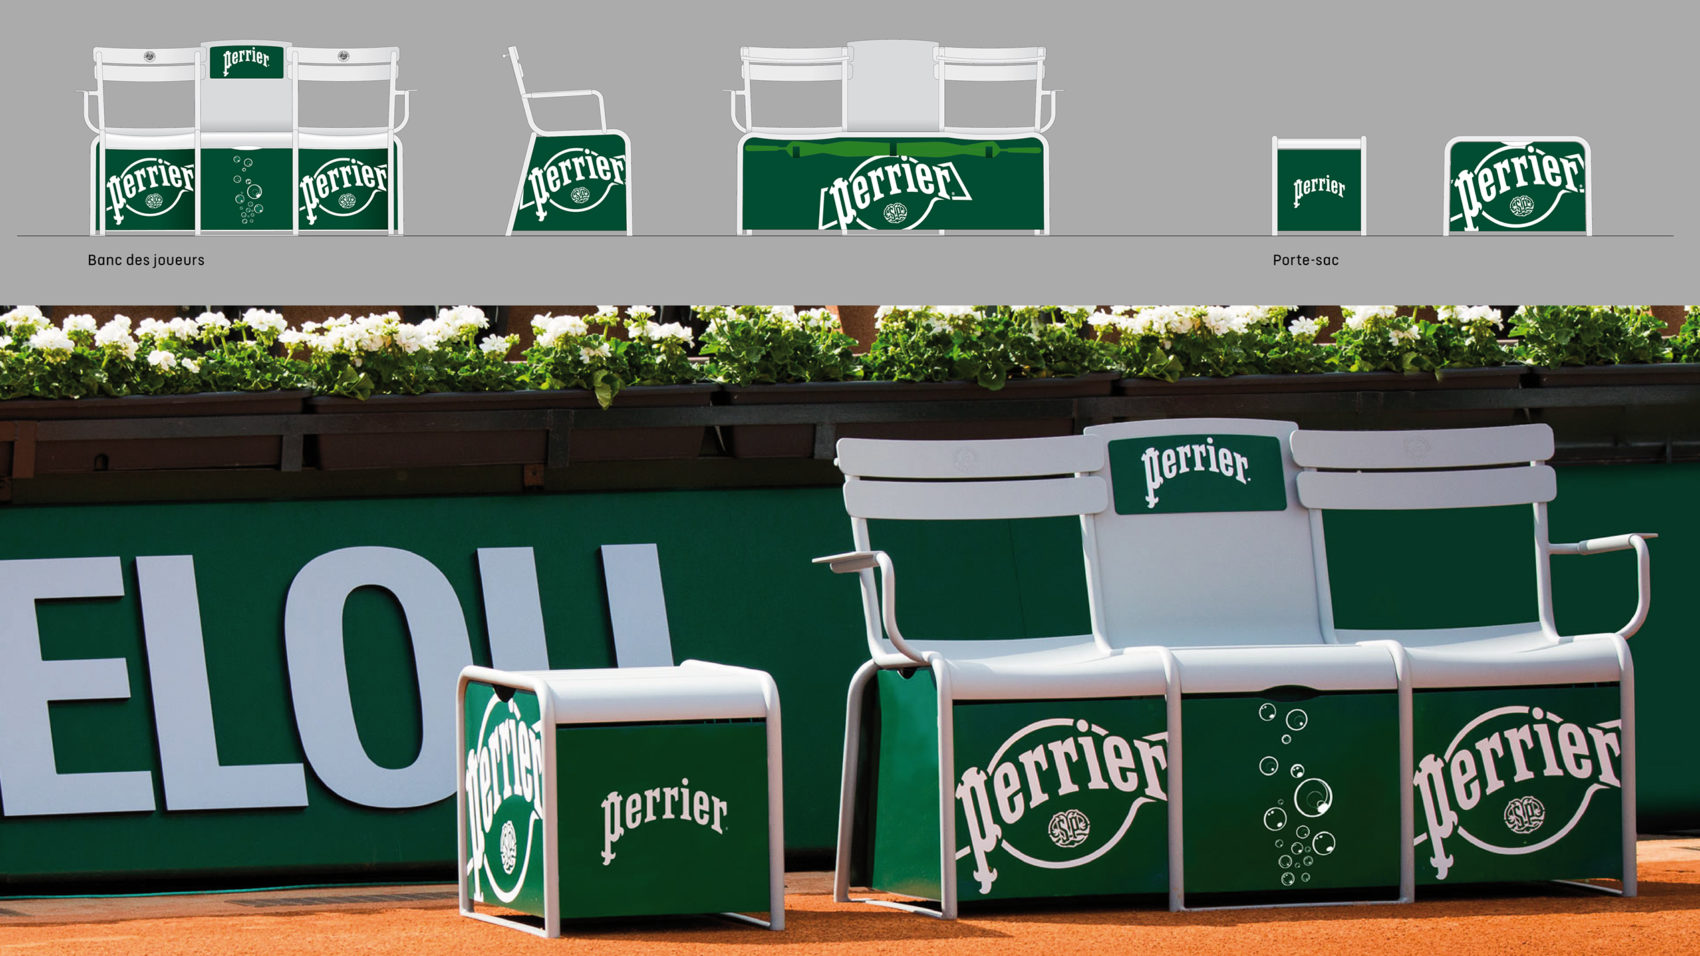 Projet_project_realisation_FFT_federation_francaise_french_tennis_roland_garros_4